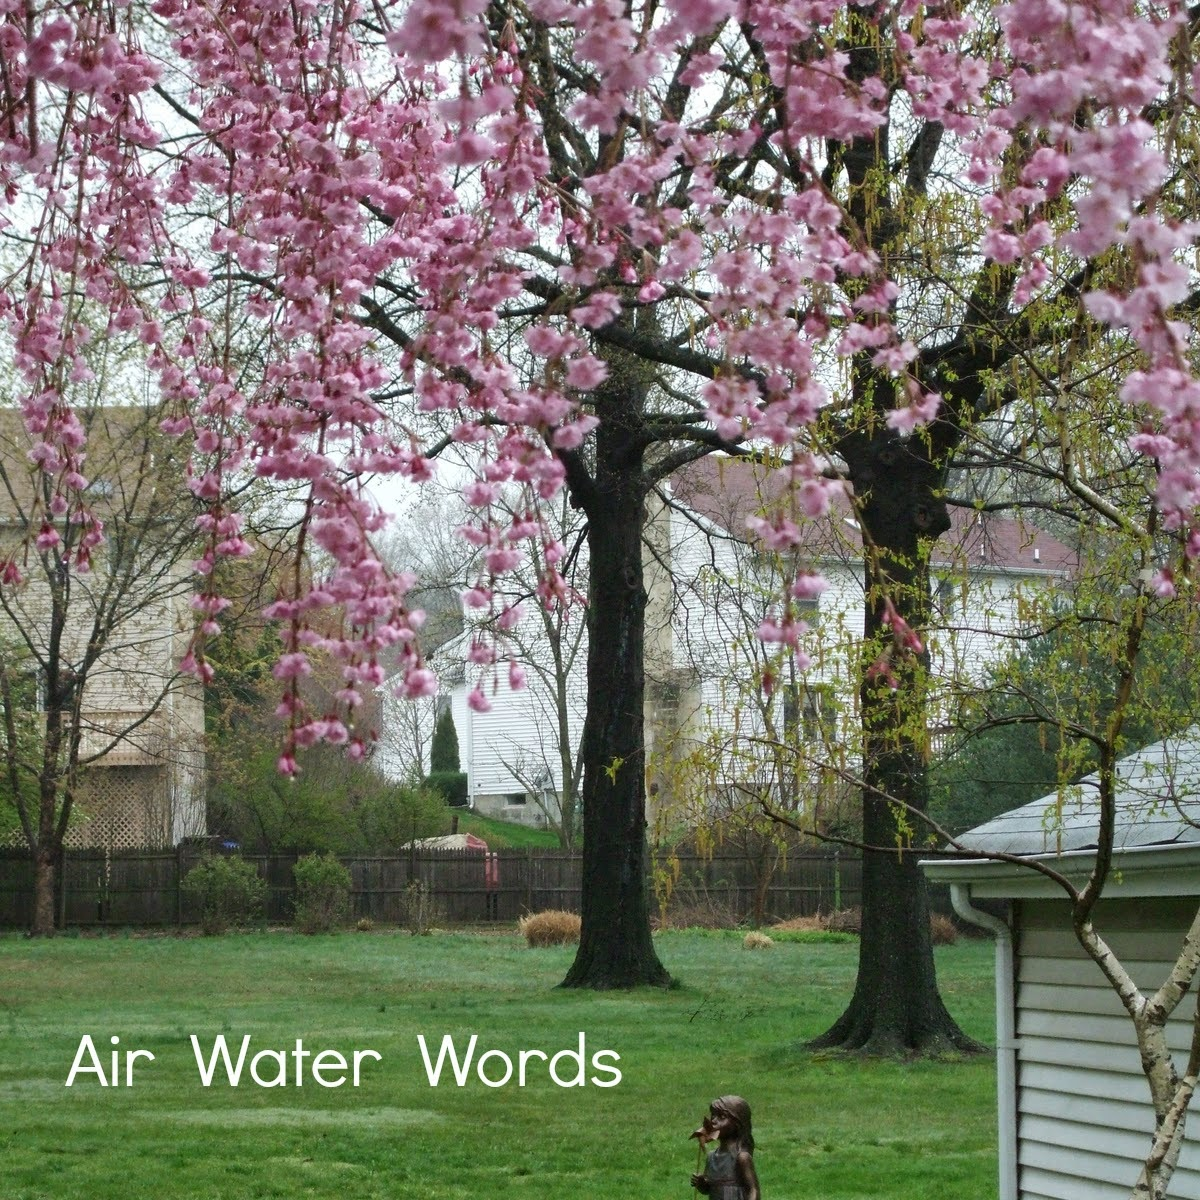 http://airwaterwords.blogspot.com/